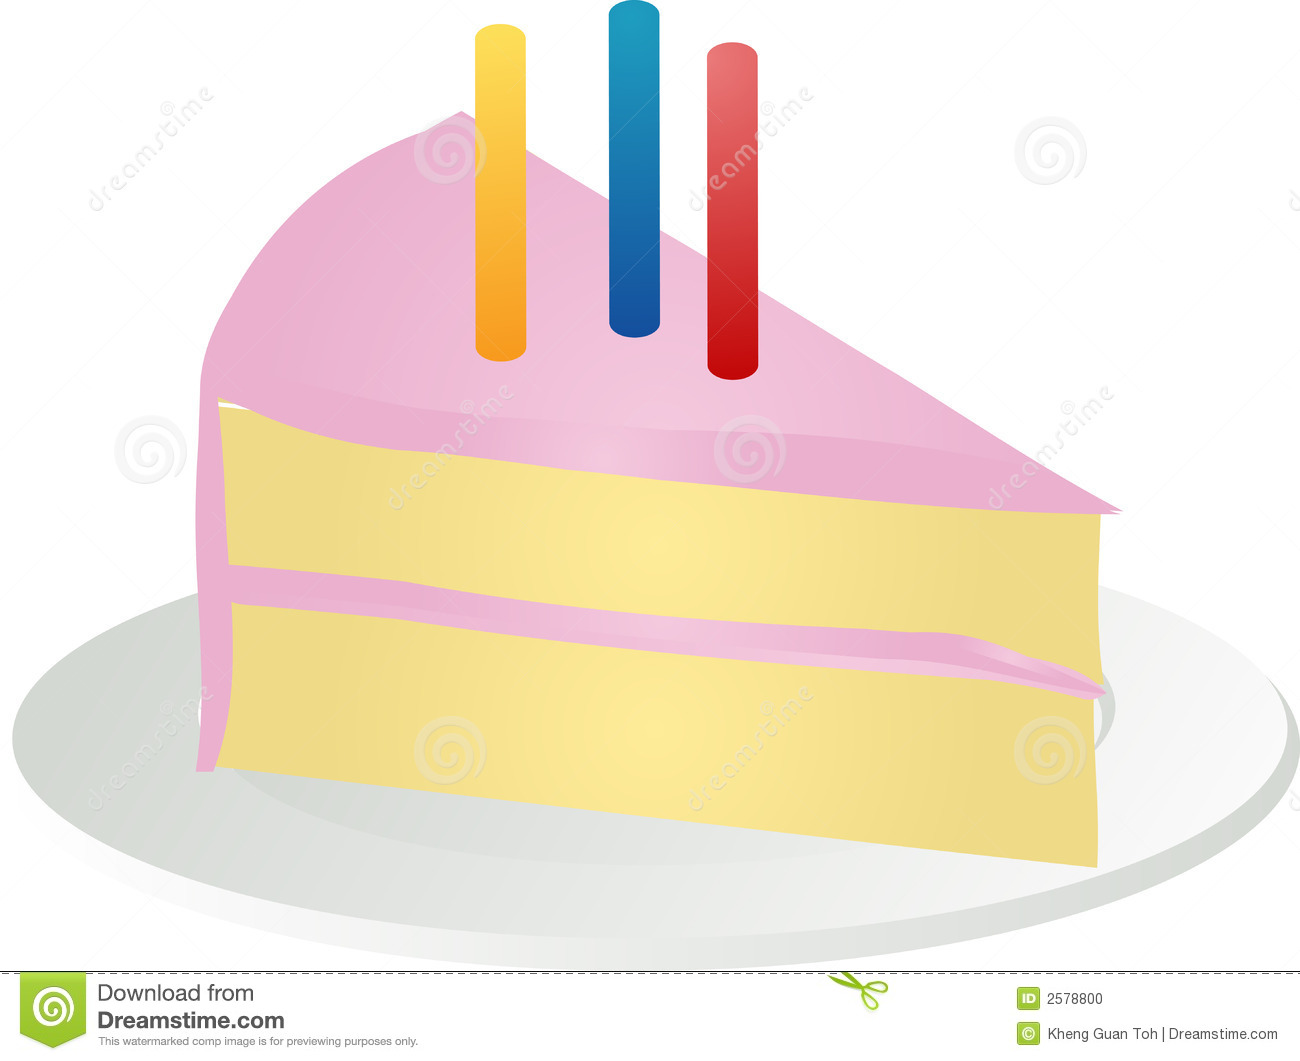 Clipart birthday cake slice. Of stock photo image